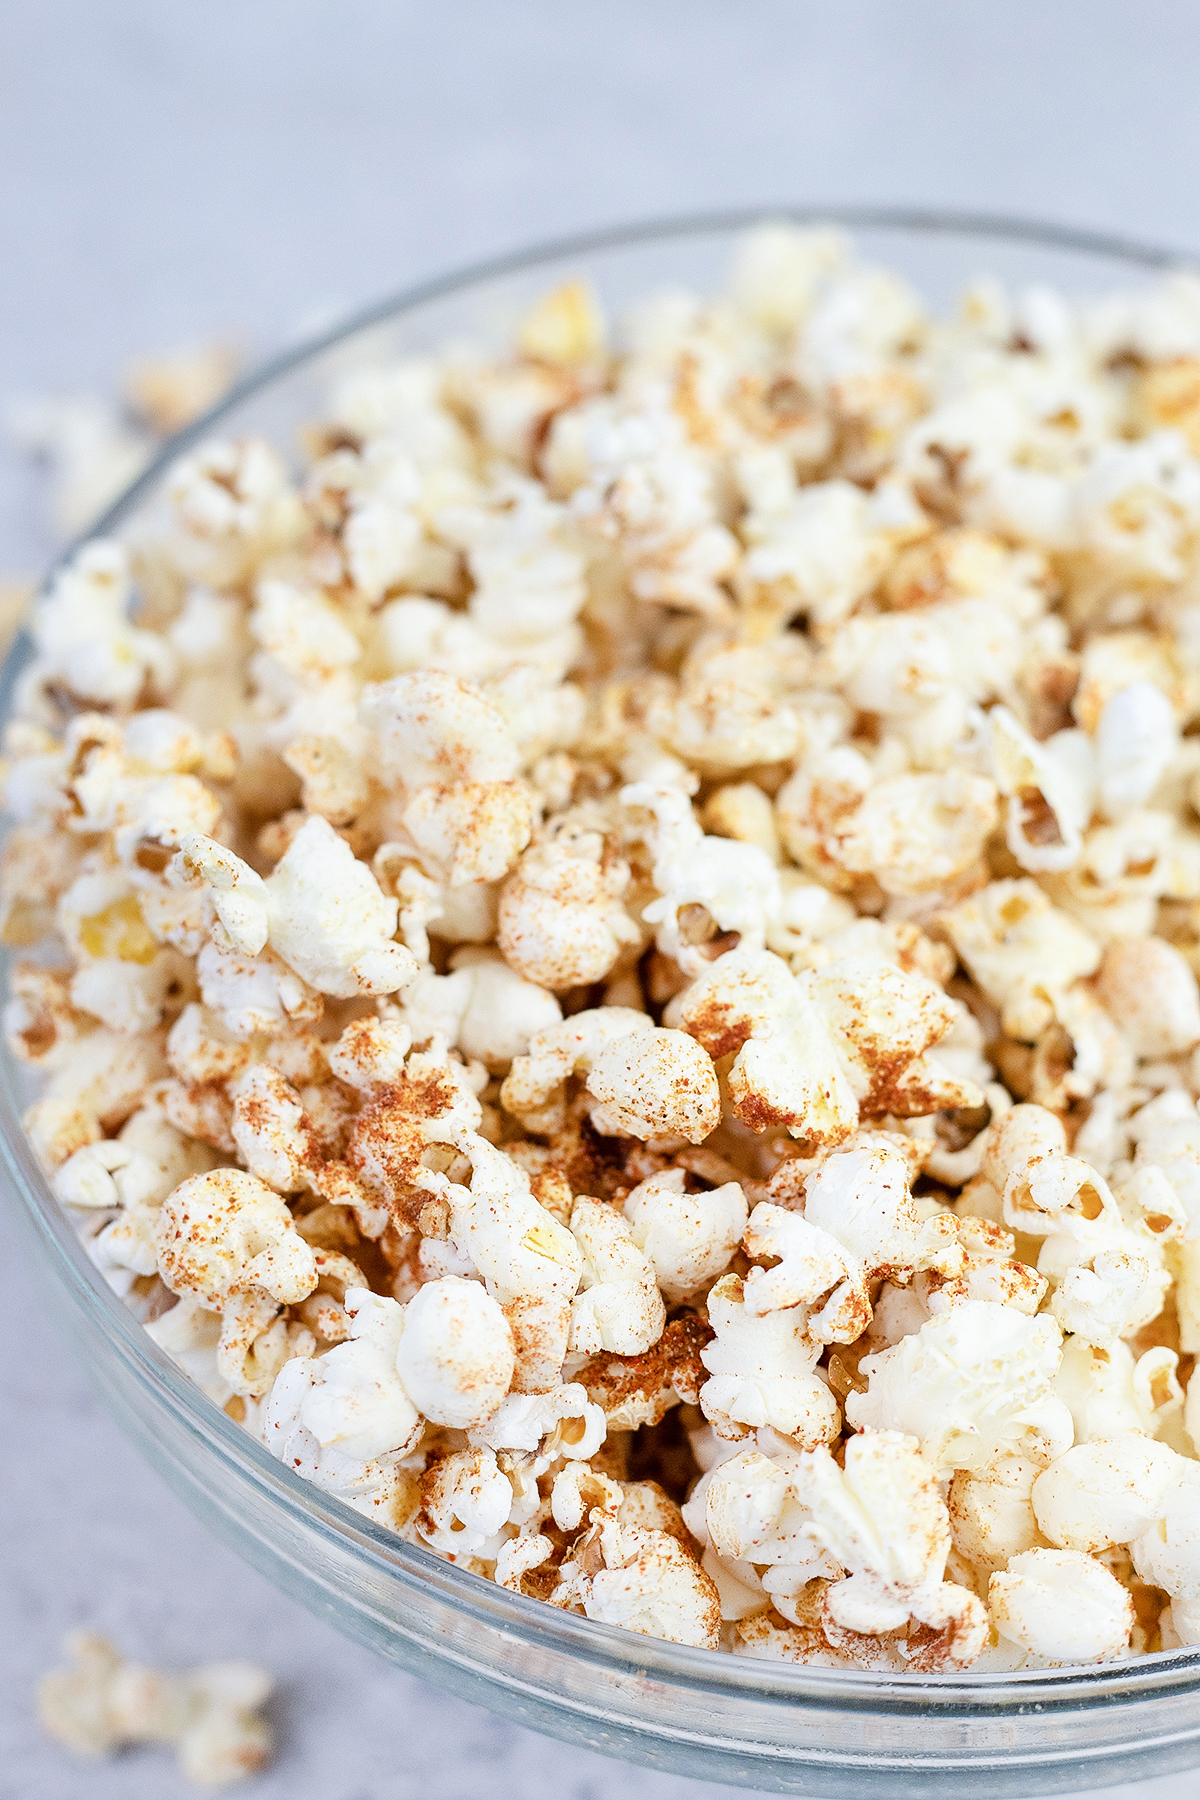 Spicy Popcorn - The Best Party Popcorn